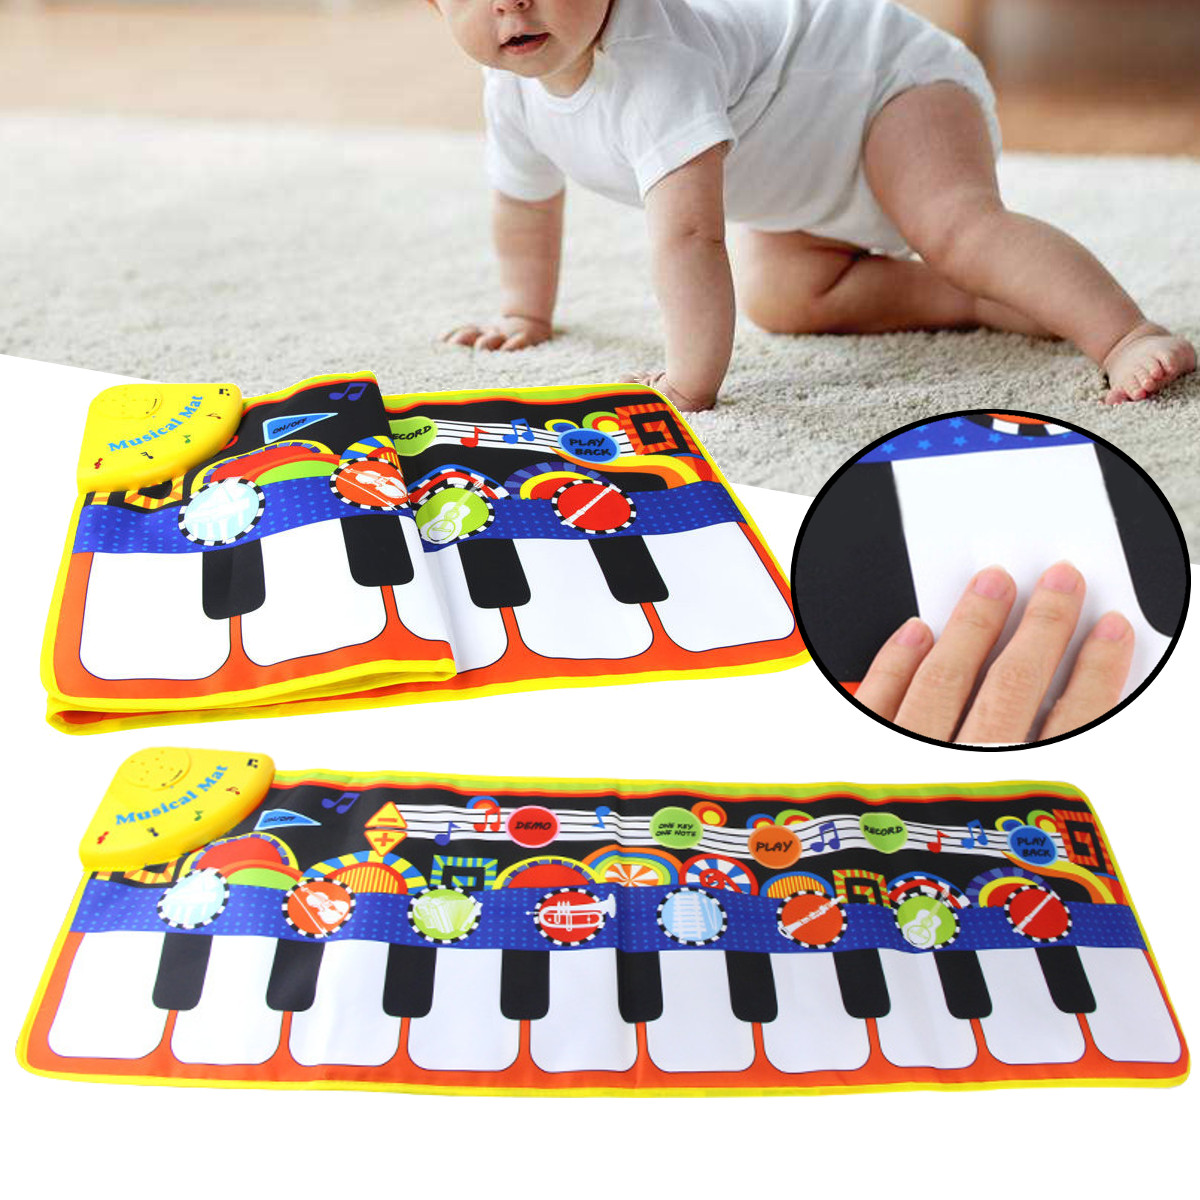 Musical Mat Baby Early Education Music Piano Keyboard Carpet Blanket Touch Play Safety Learn Singing funny Toy for Kids